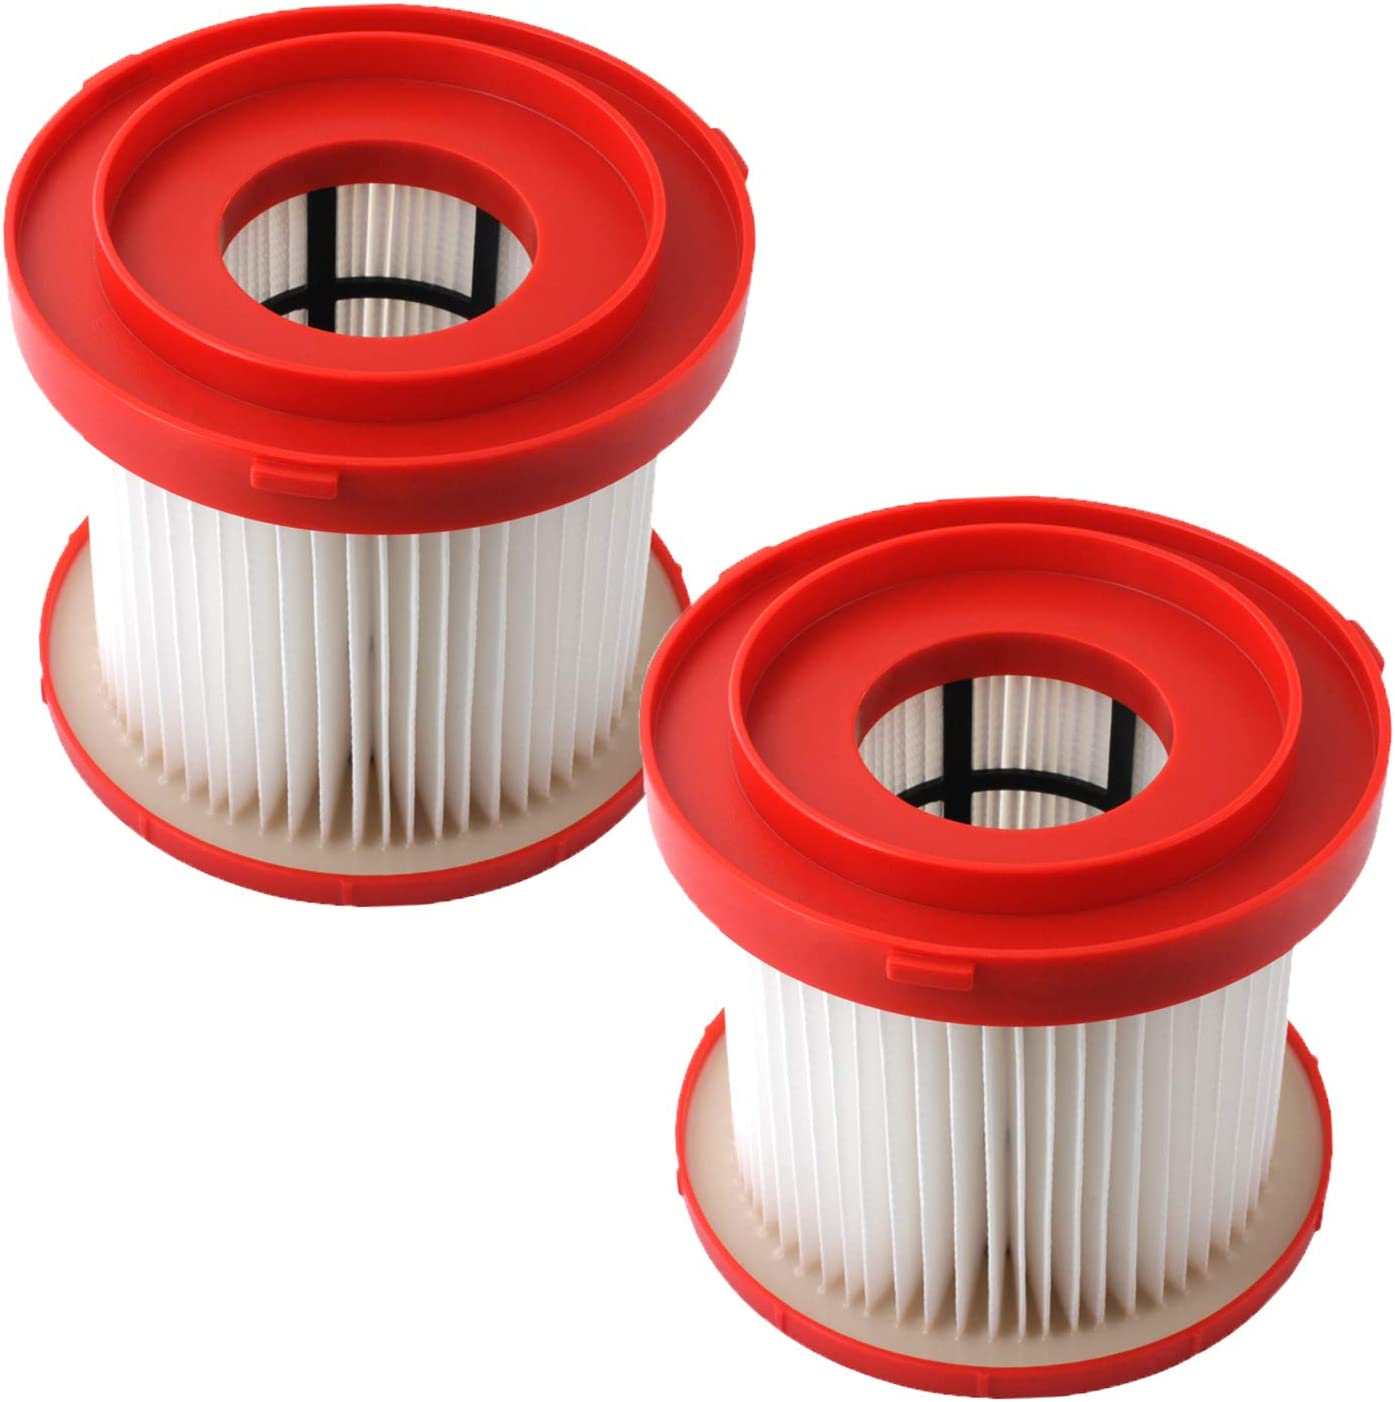 0880-20 Filter, Wet Dry Vacuum HEPA Filter Replacement Compatible Milwaukee 49-90-1900 Cordless Vacuums